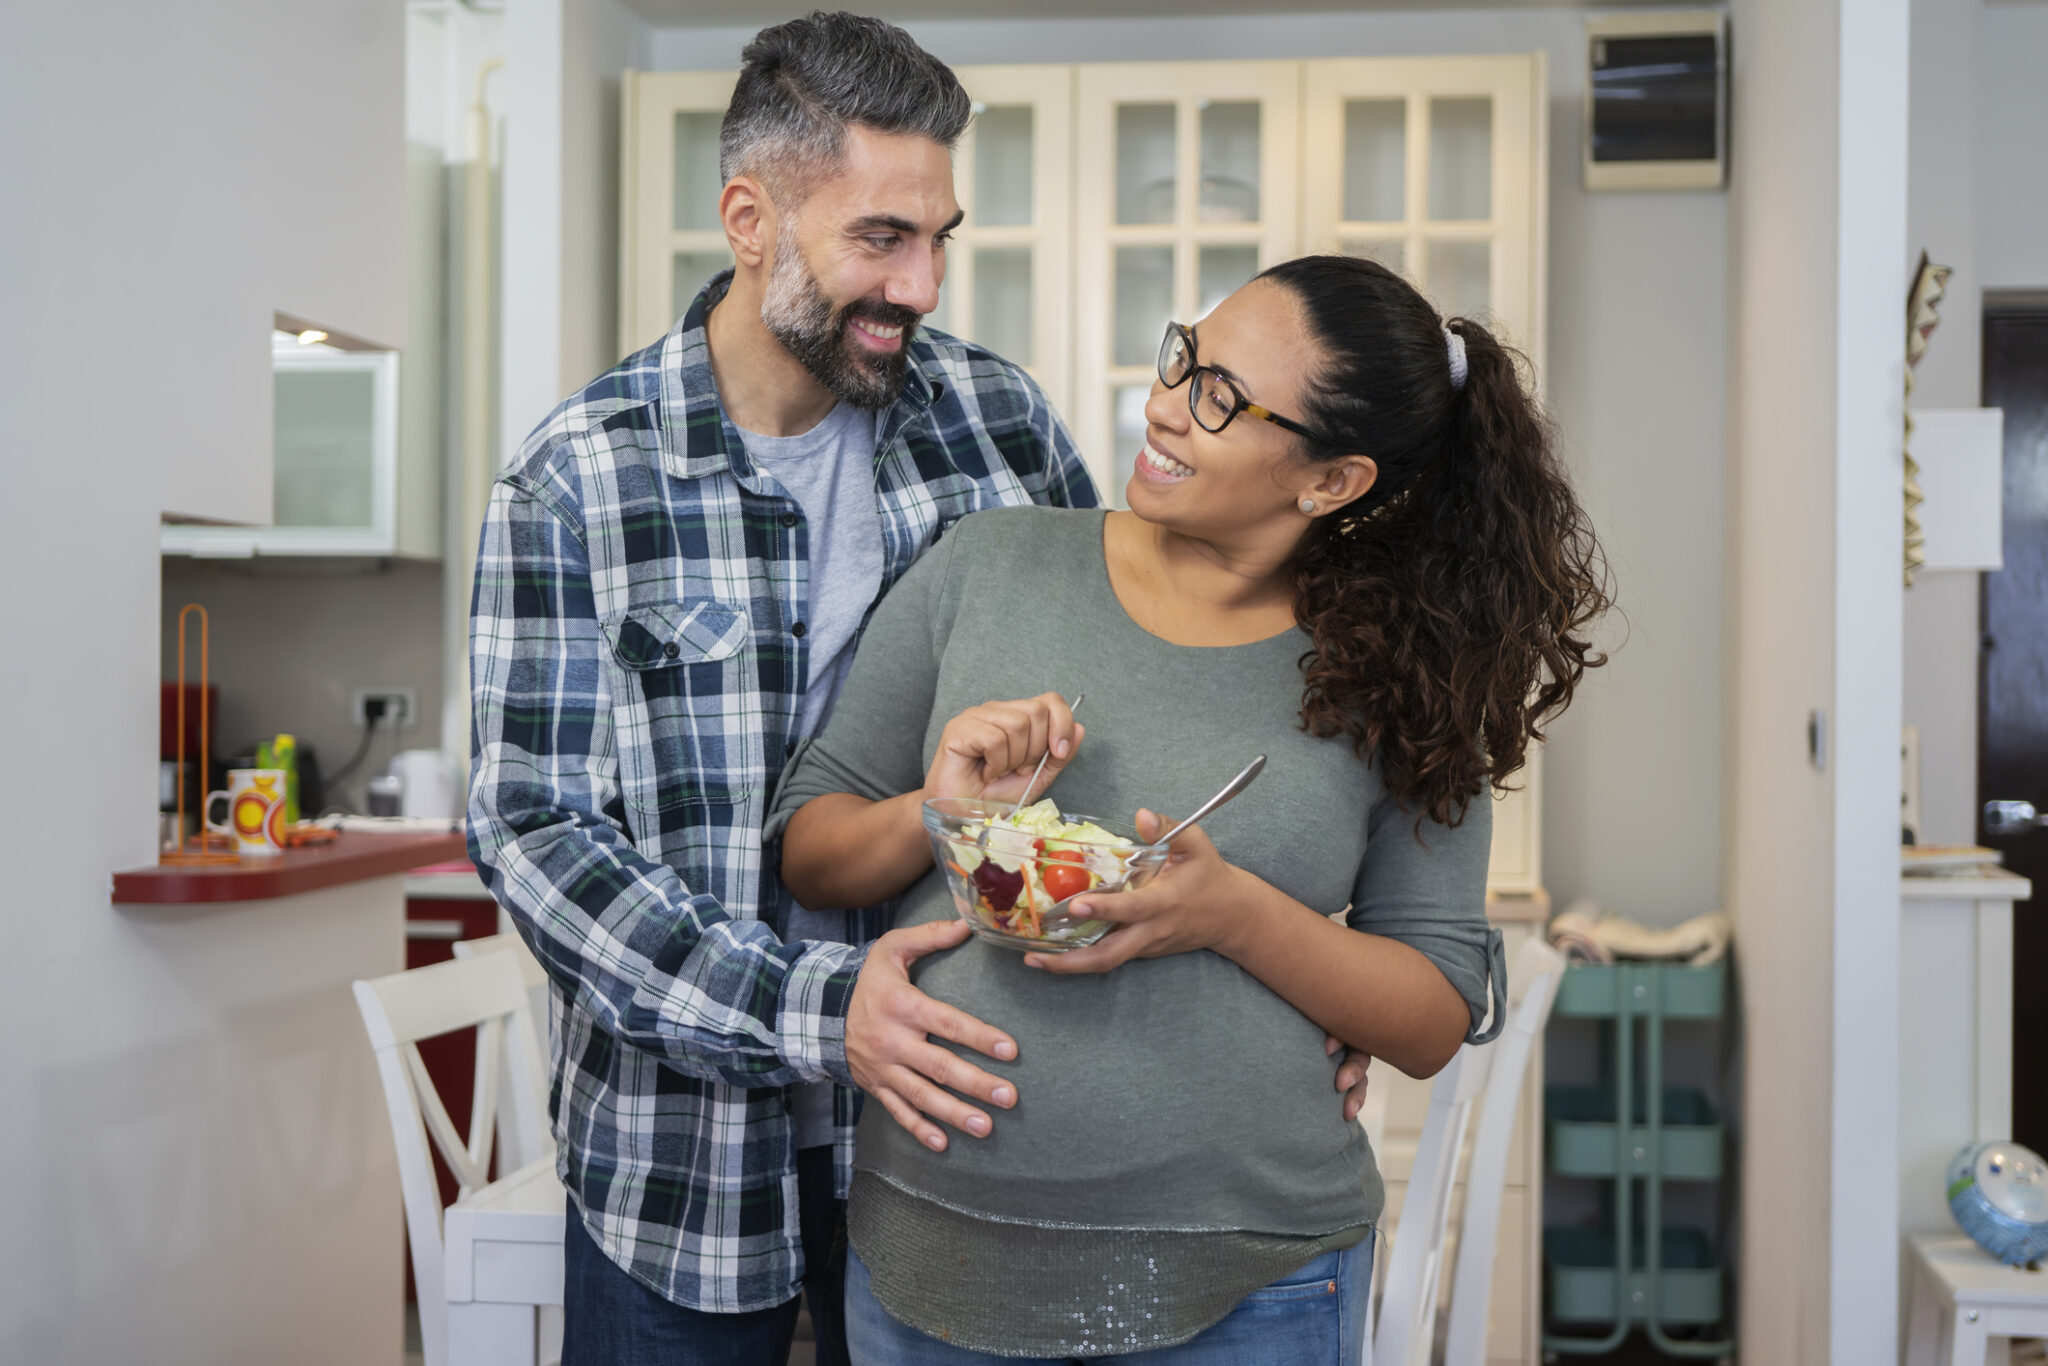 Mature multiethnic couple in kitchen